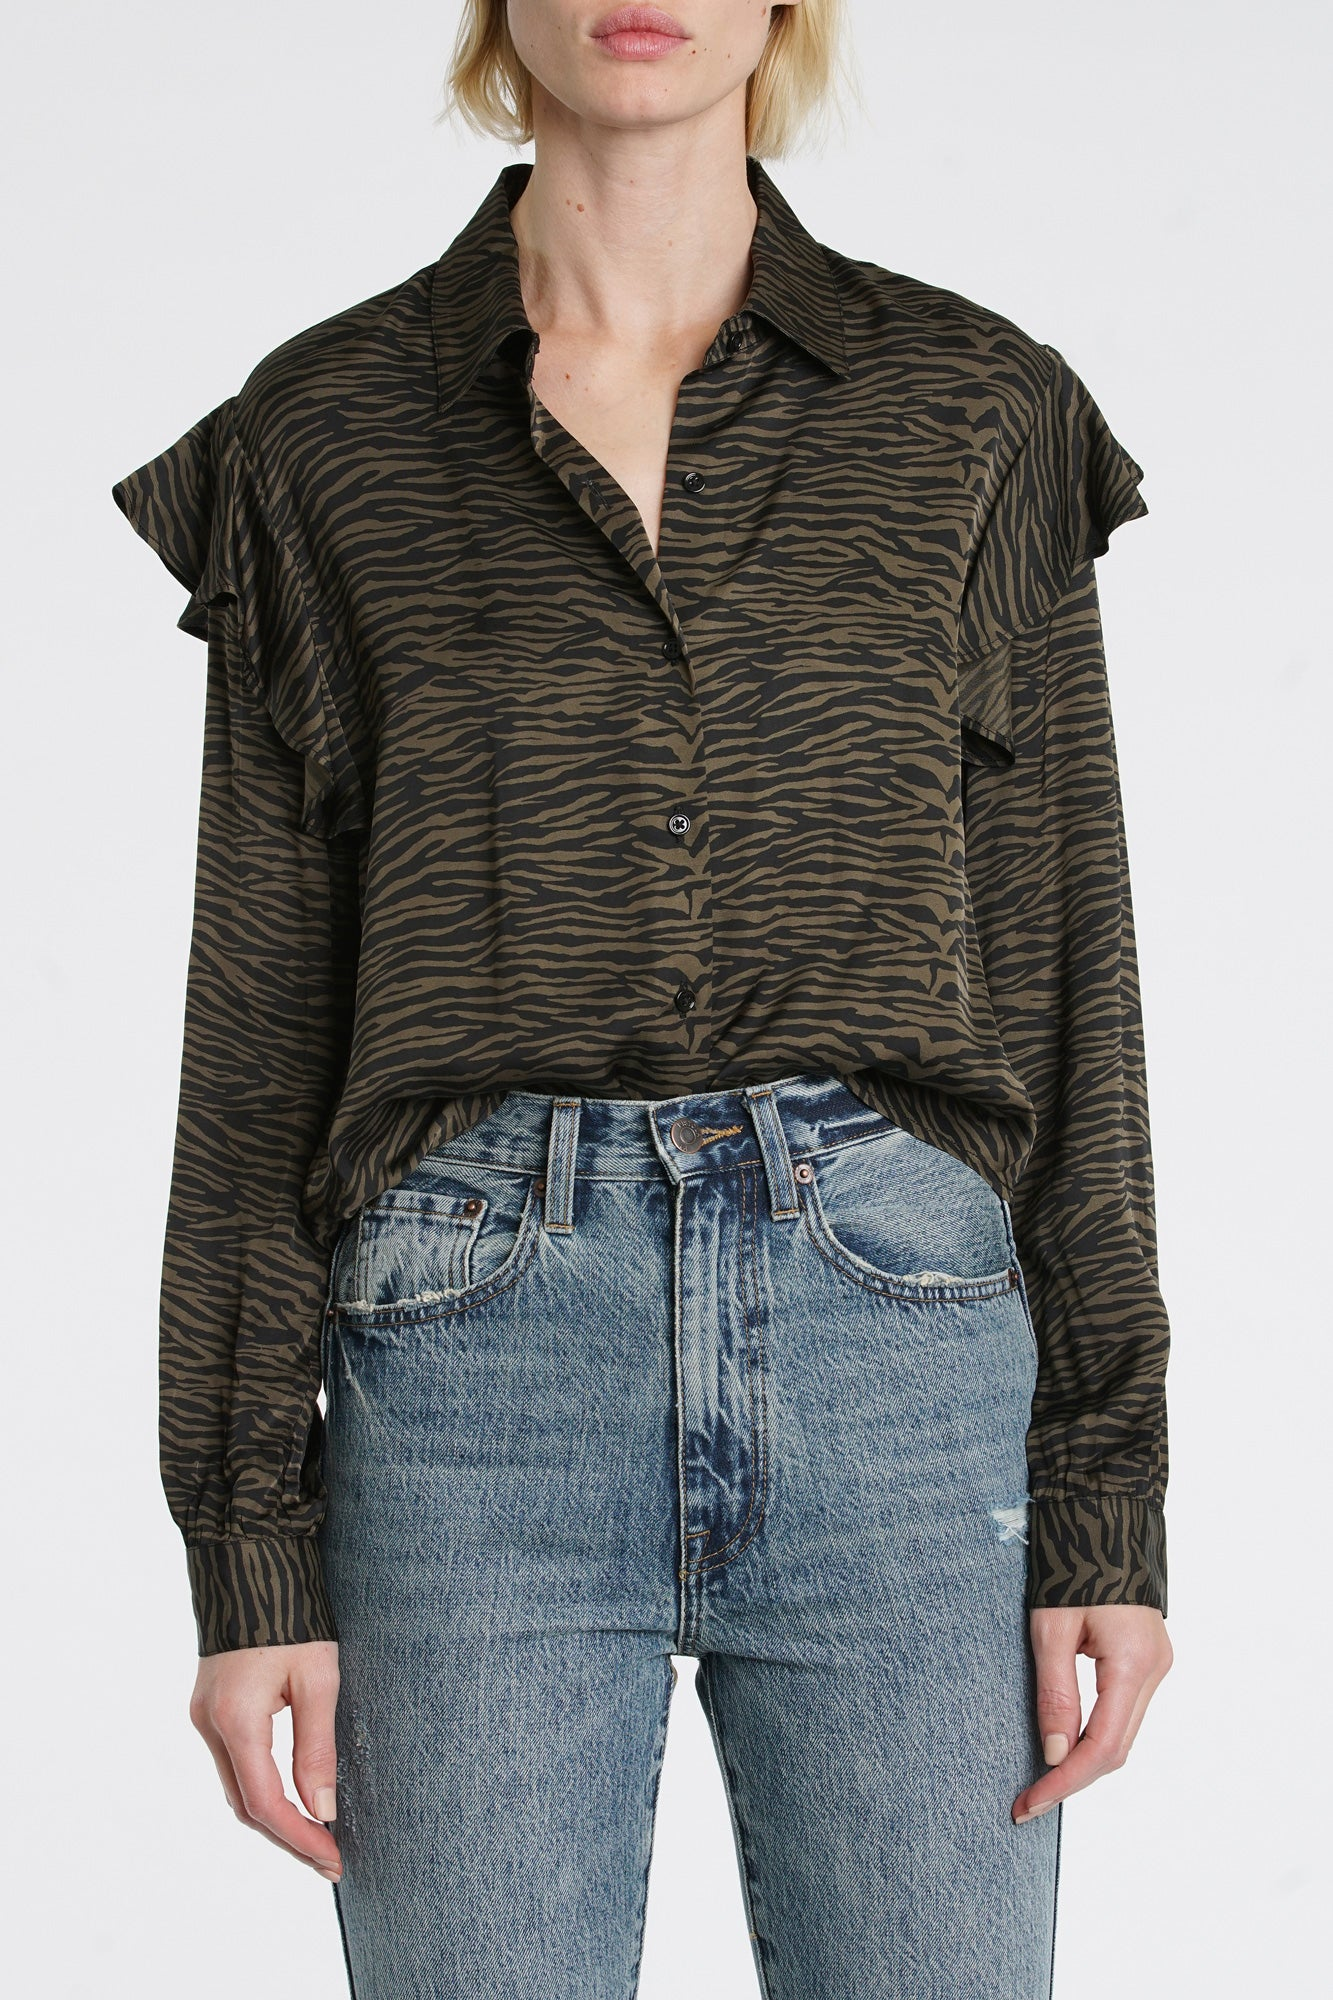 Rylan Long Sleeve Ruffle Button Up - Cadet Olive Tiger